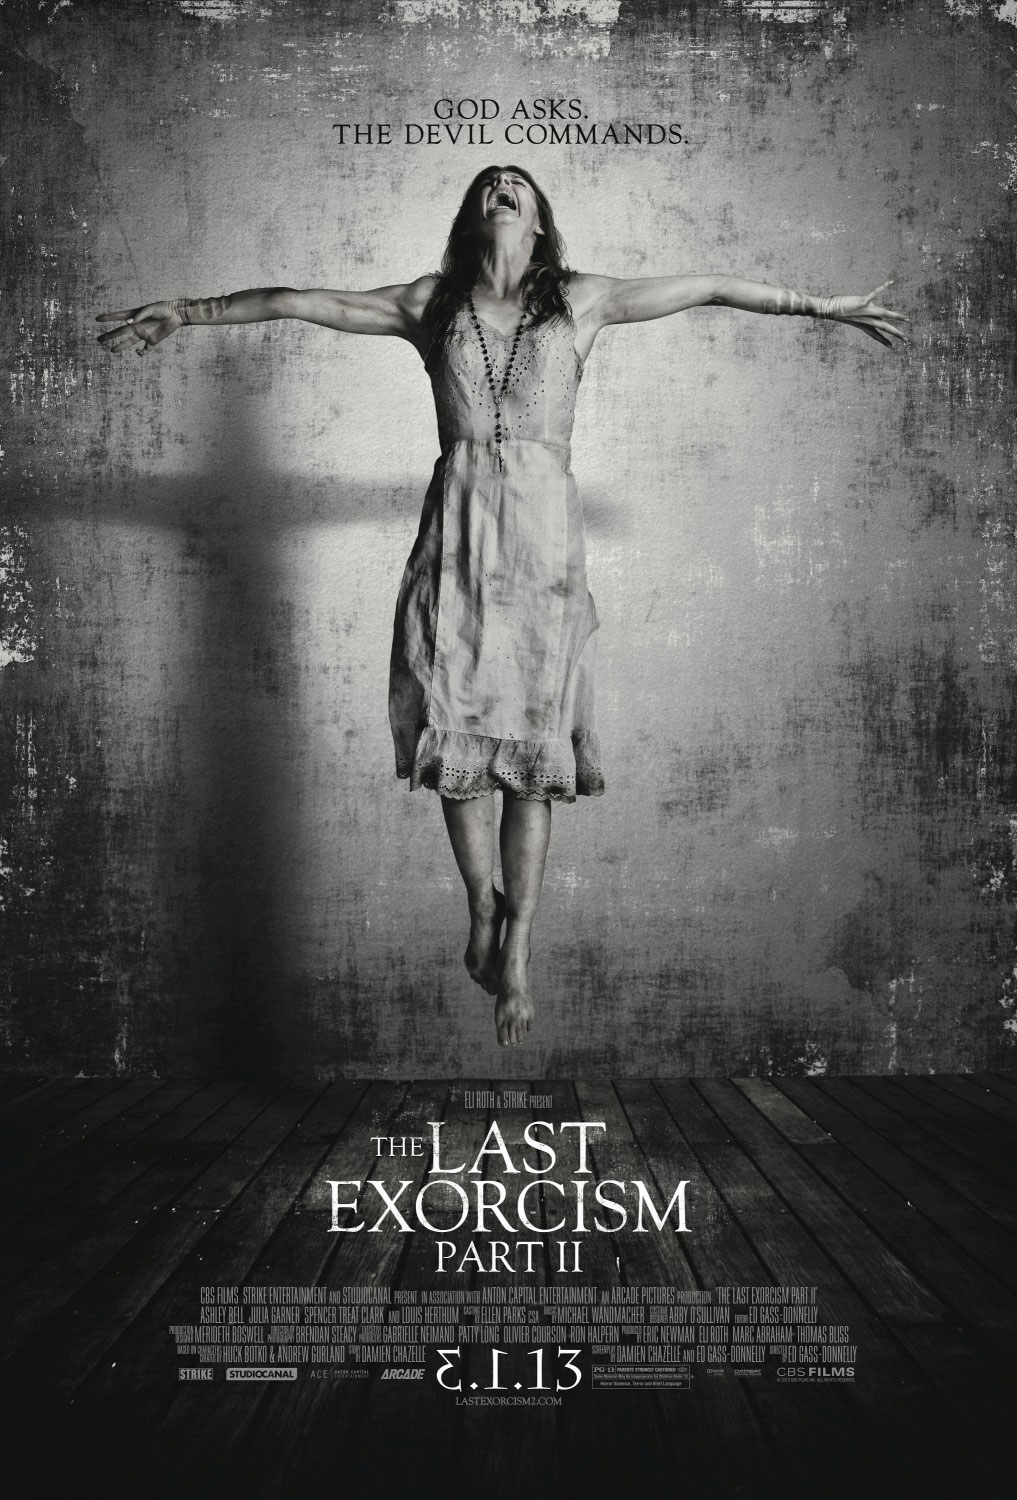 The Last Exorcism Part II motion poster still Celebrate Ash Wednesday with New The Last Exorcism Part II Motion Poster